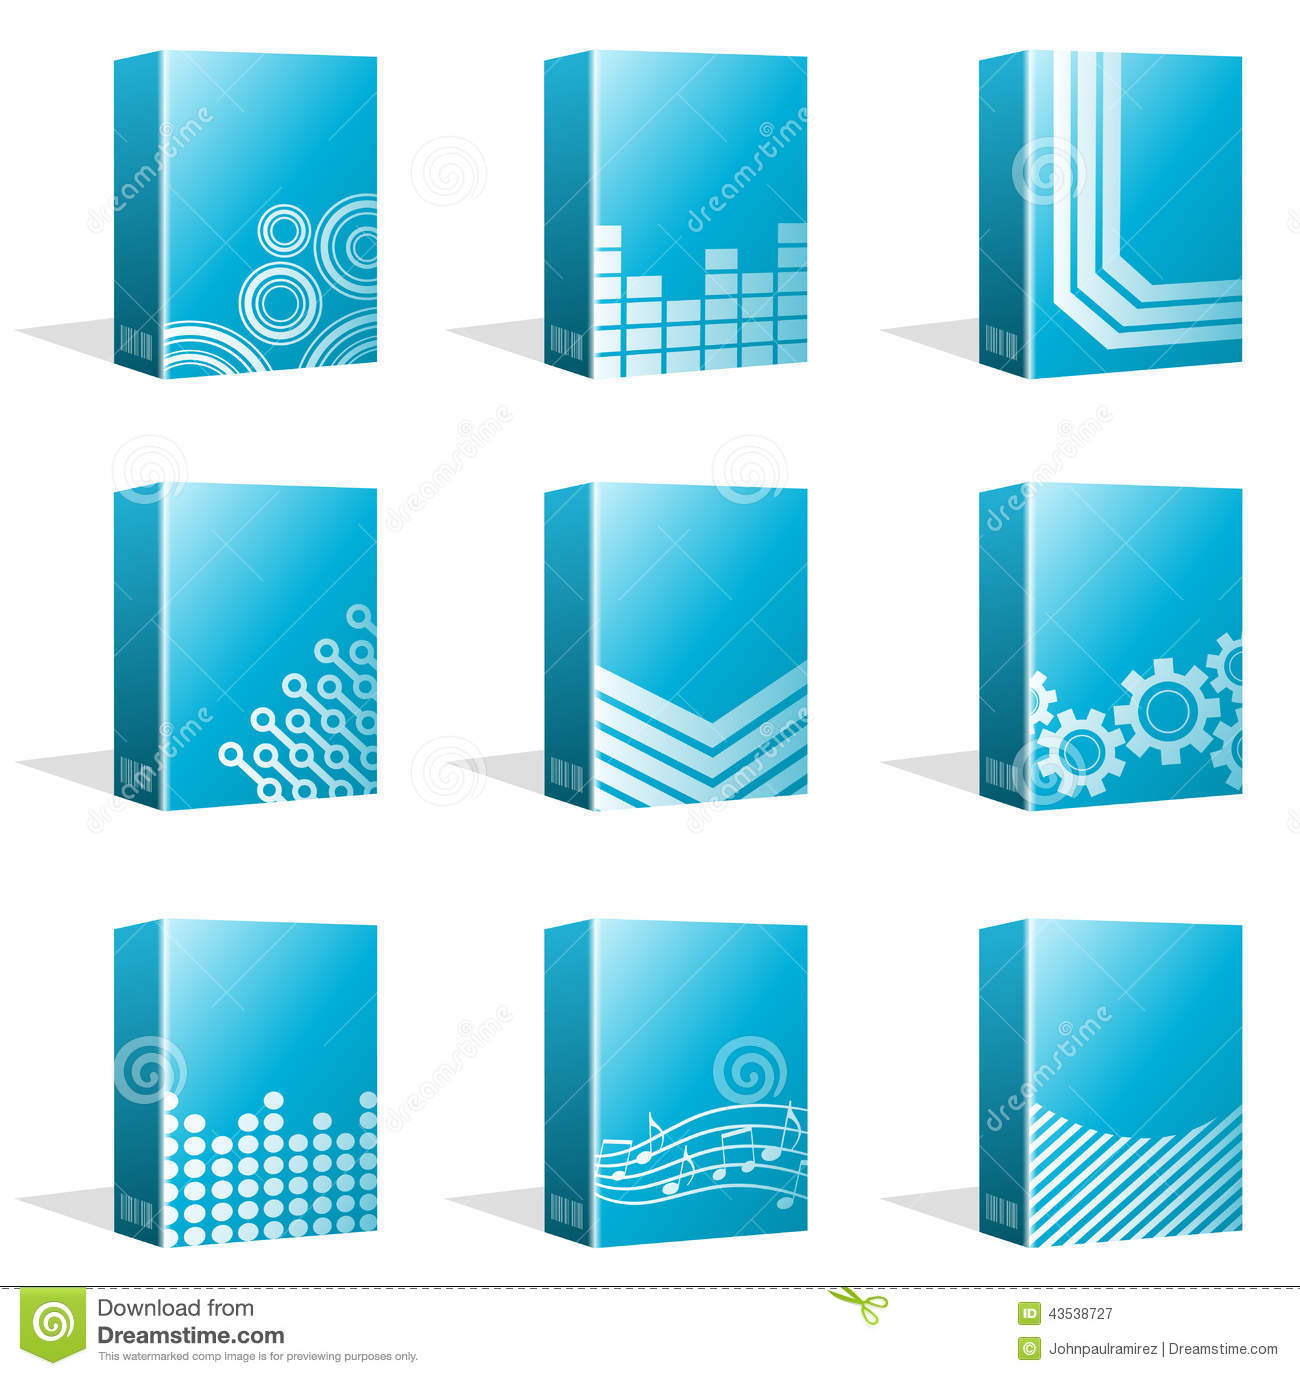 Software Boxes Ebook Cover Designs Stock Vector Illustration Of Information Icon 43538727